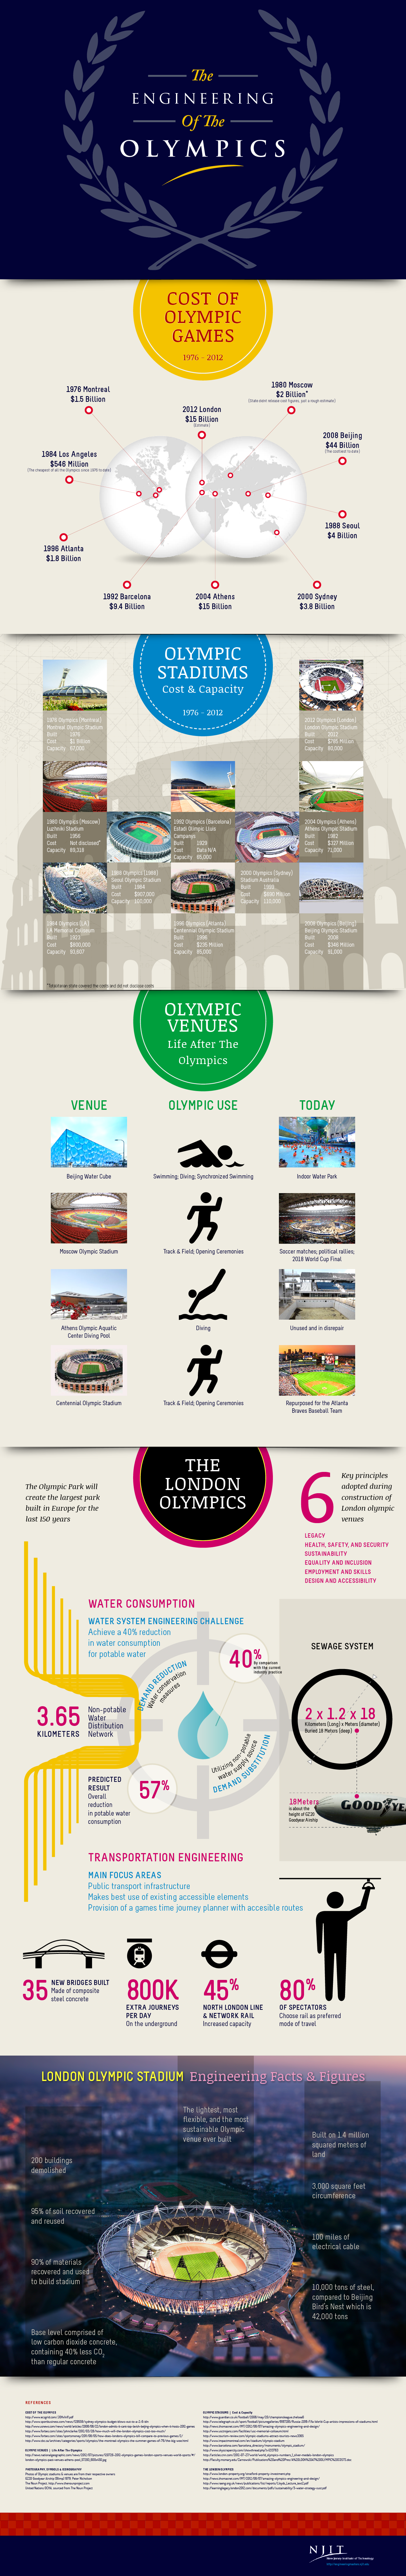 The Engineering of the Olympics